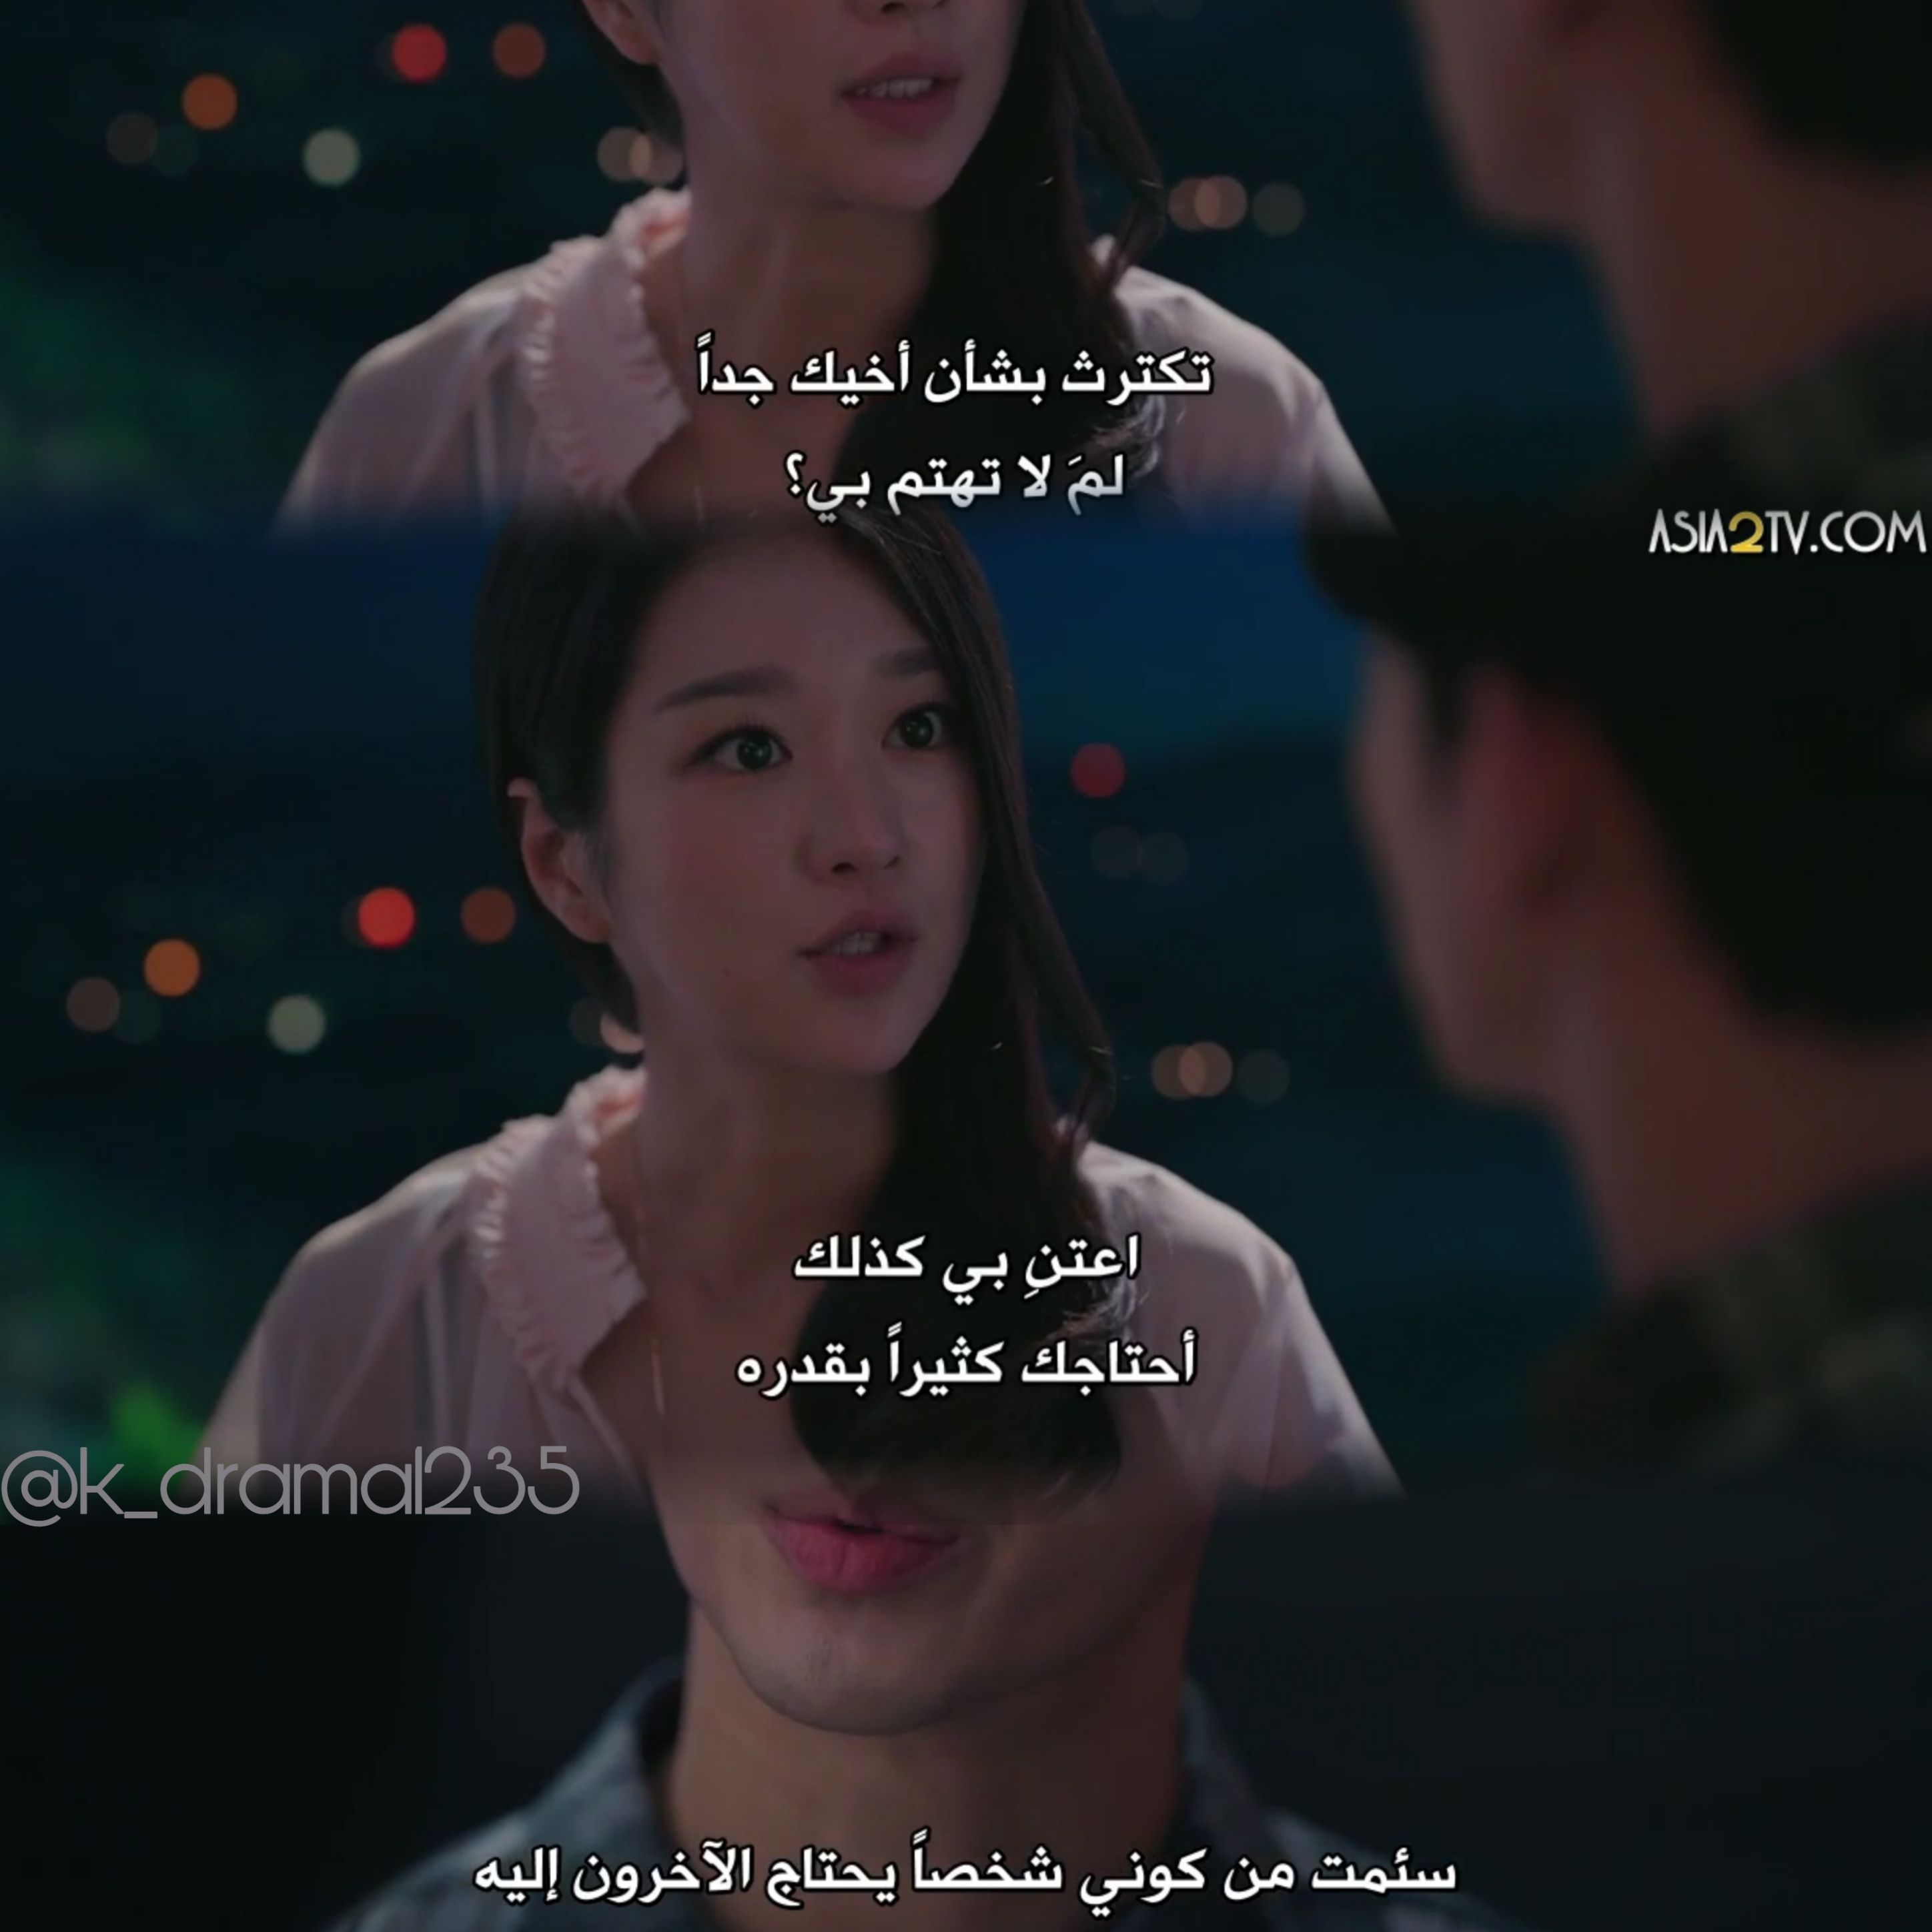 Pin By Shahed Alzaite On Drama Its Okay To Not Be Okay Movies Movie Posters Drama